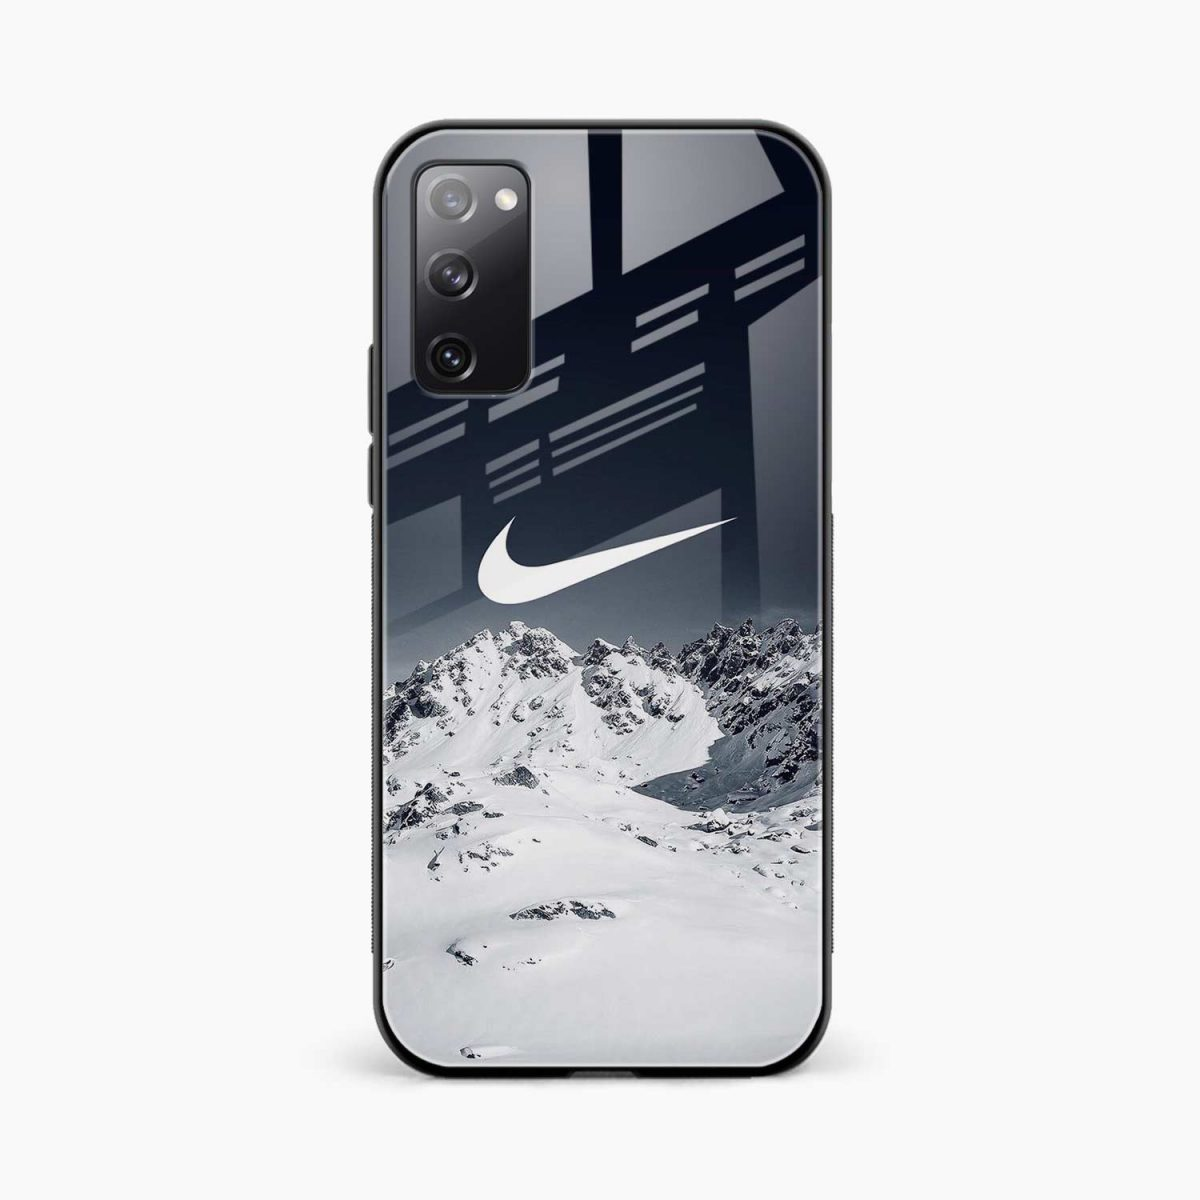 nike mountains front view samsung galaxy s20 fe back cover